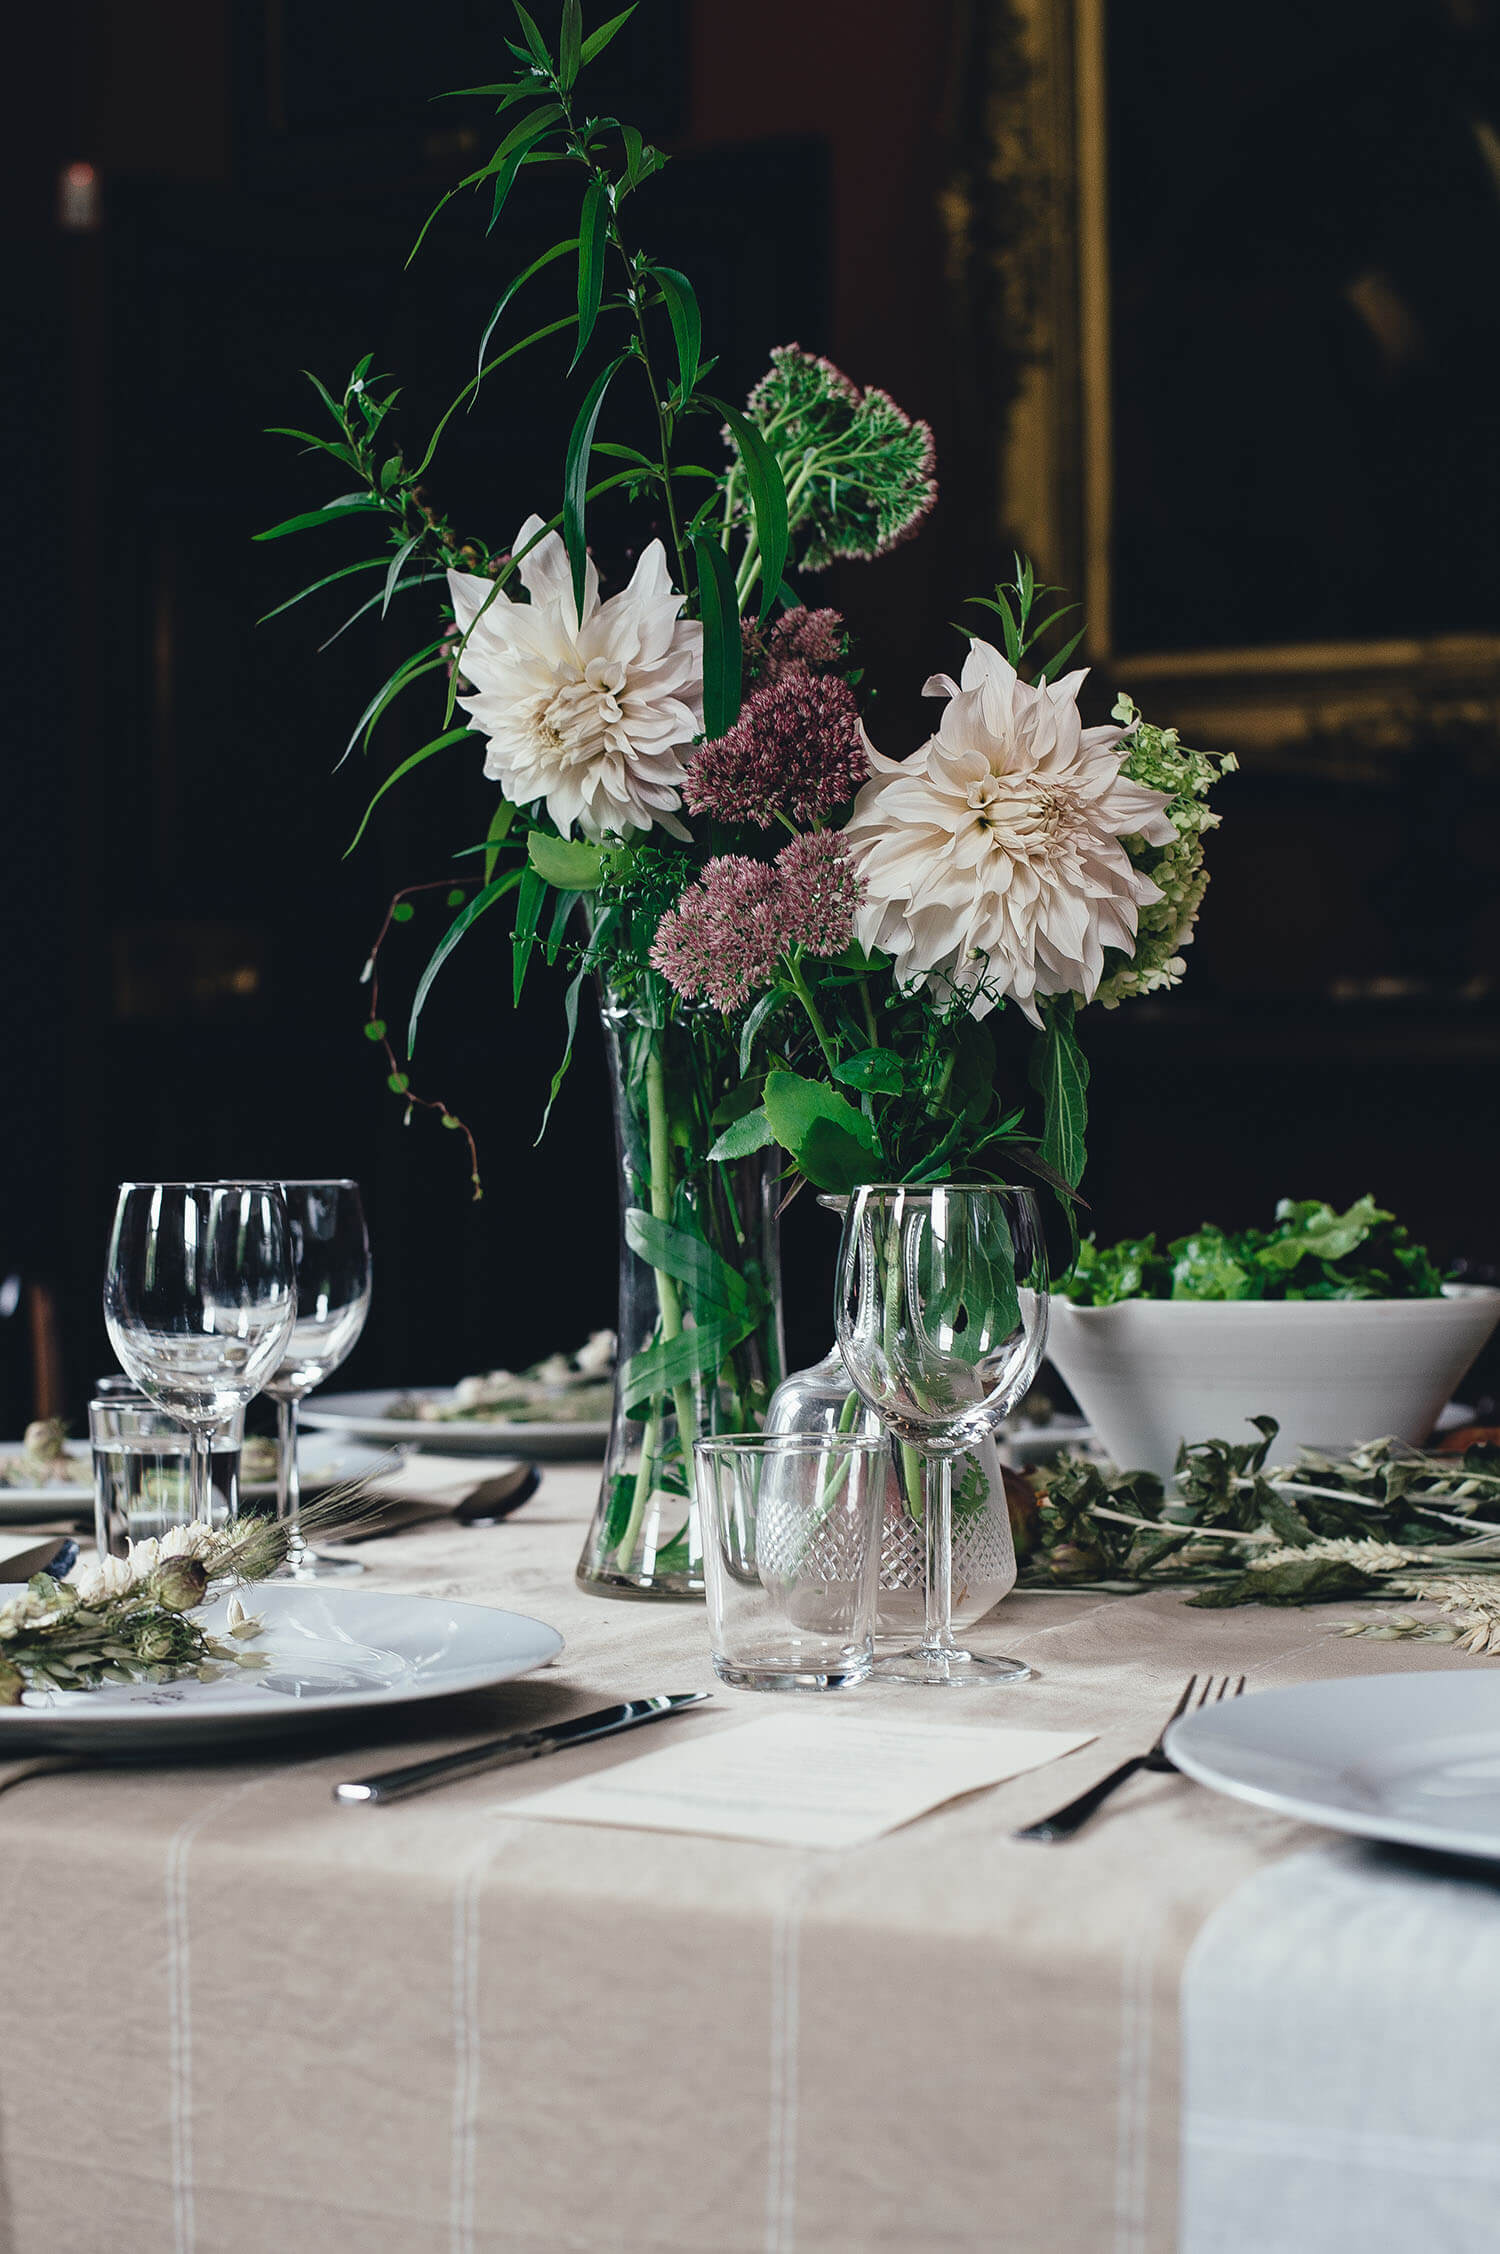 Table Setting for Zero Waste Events